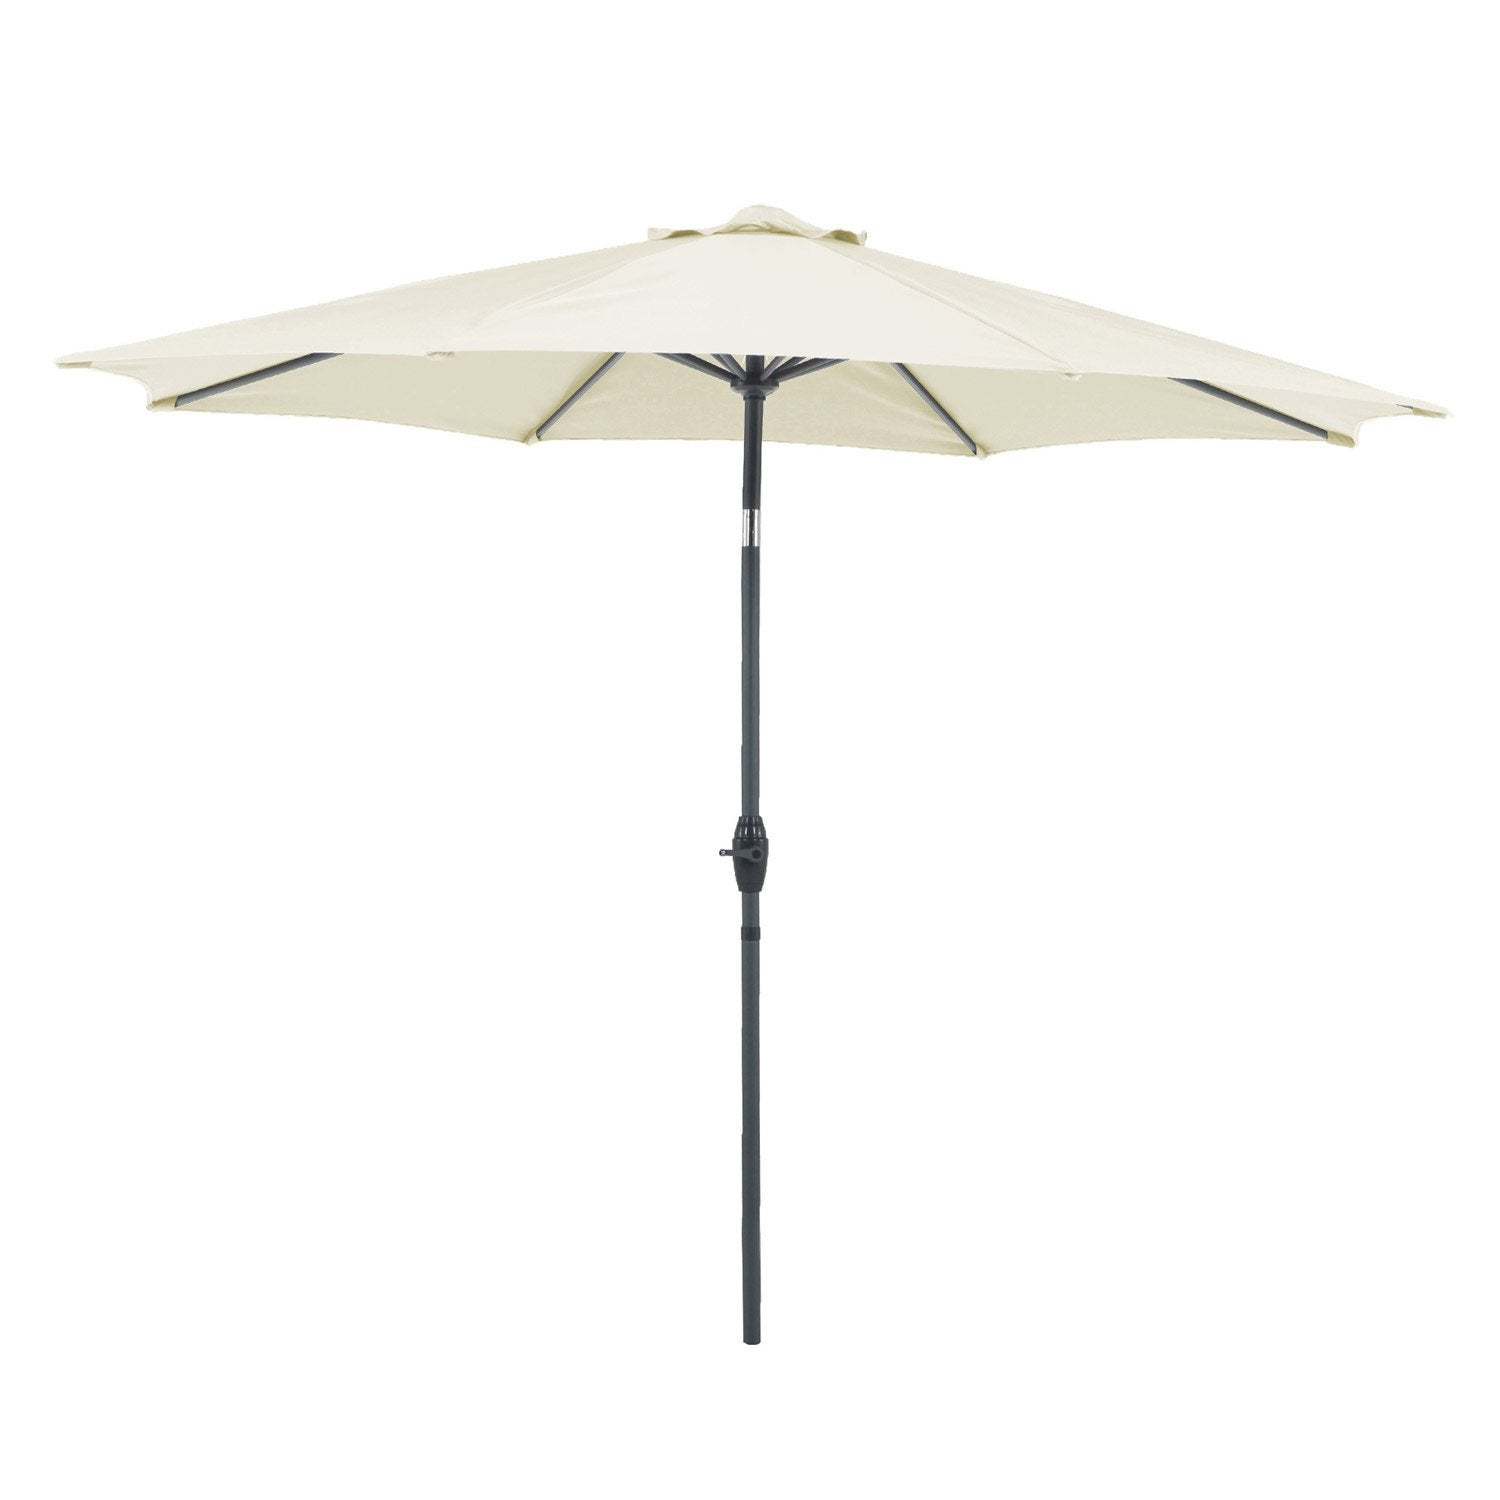 leroy merlin parasol chauffant pied de parasol tube pour. Black Bedroom Furniture Sets. Home Design Ideas